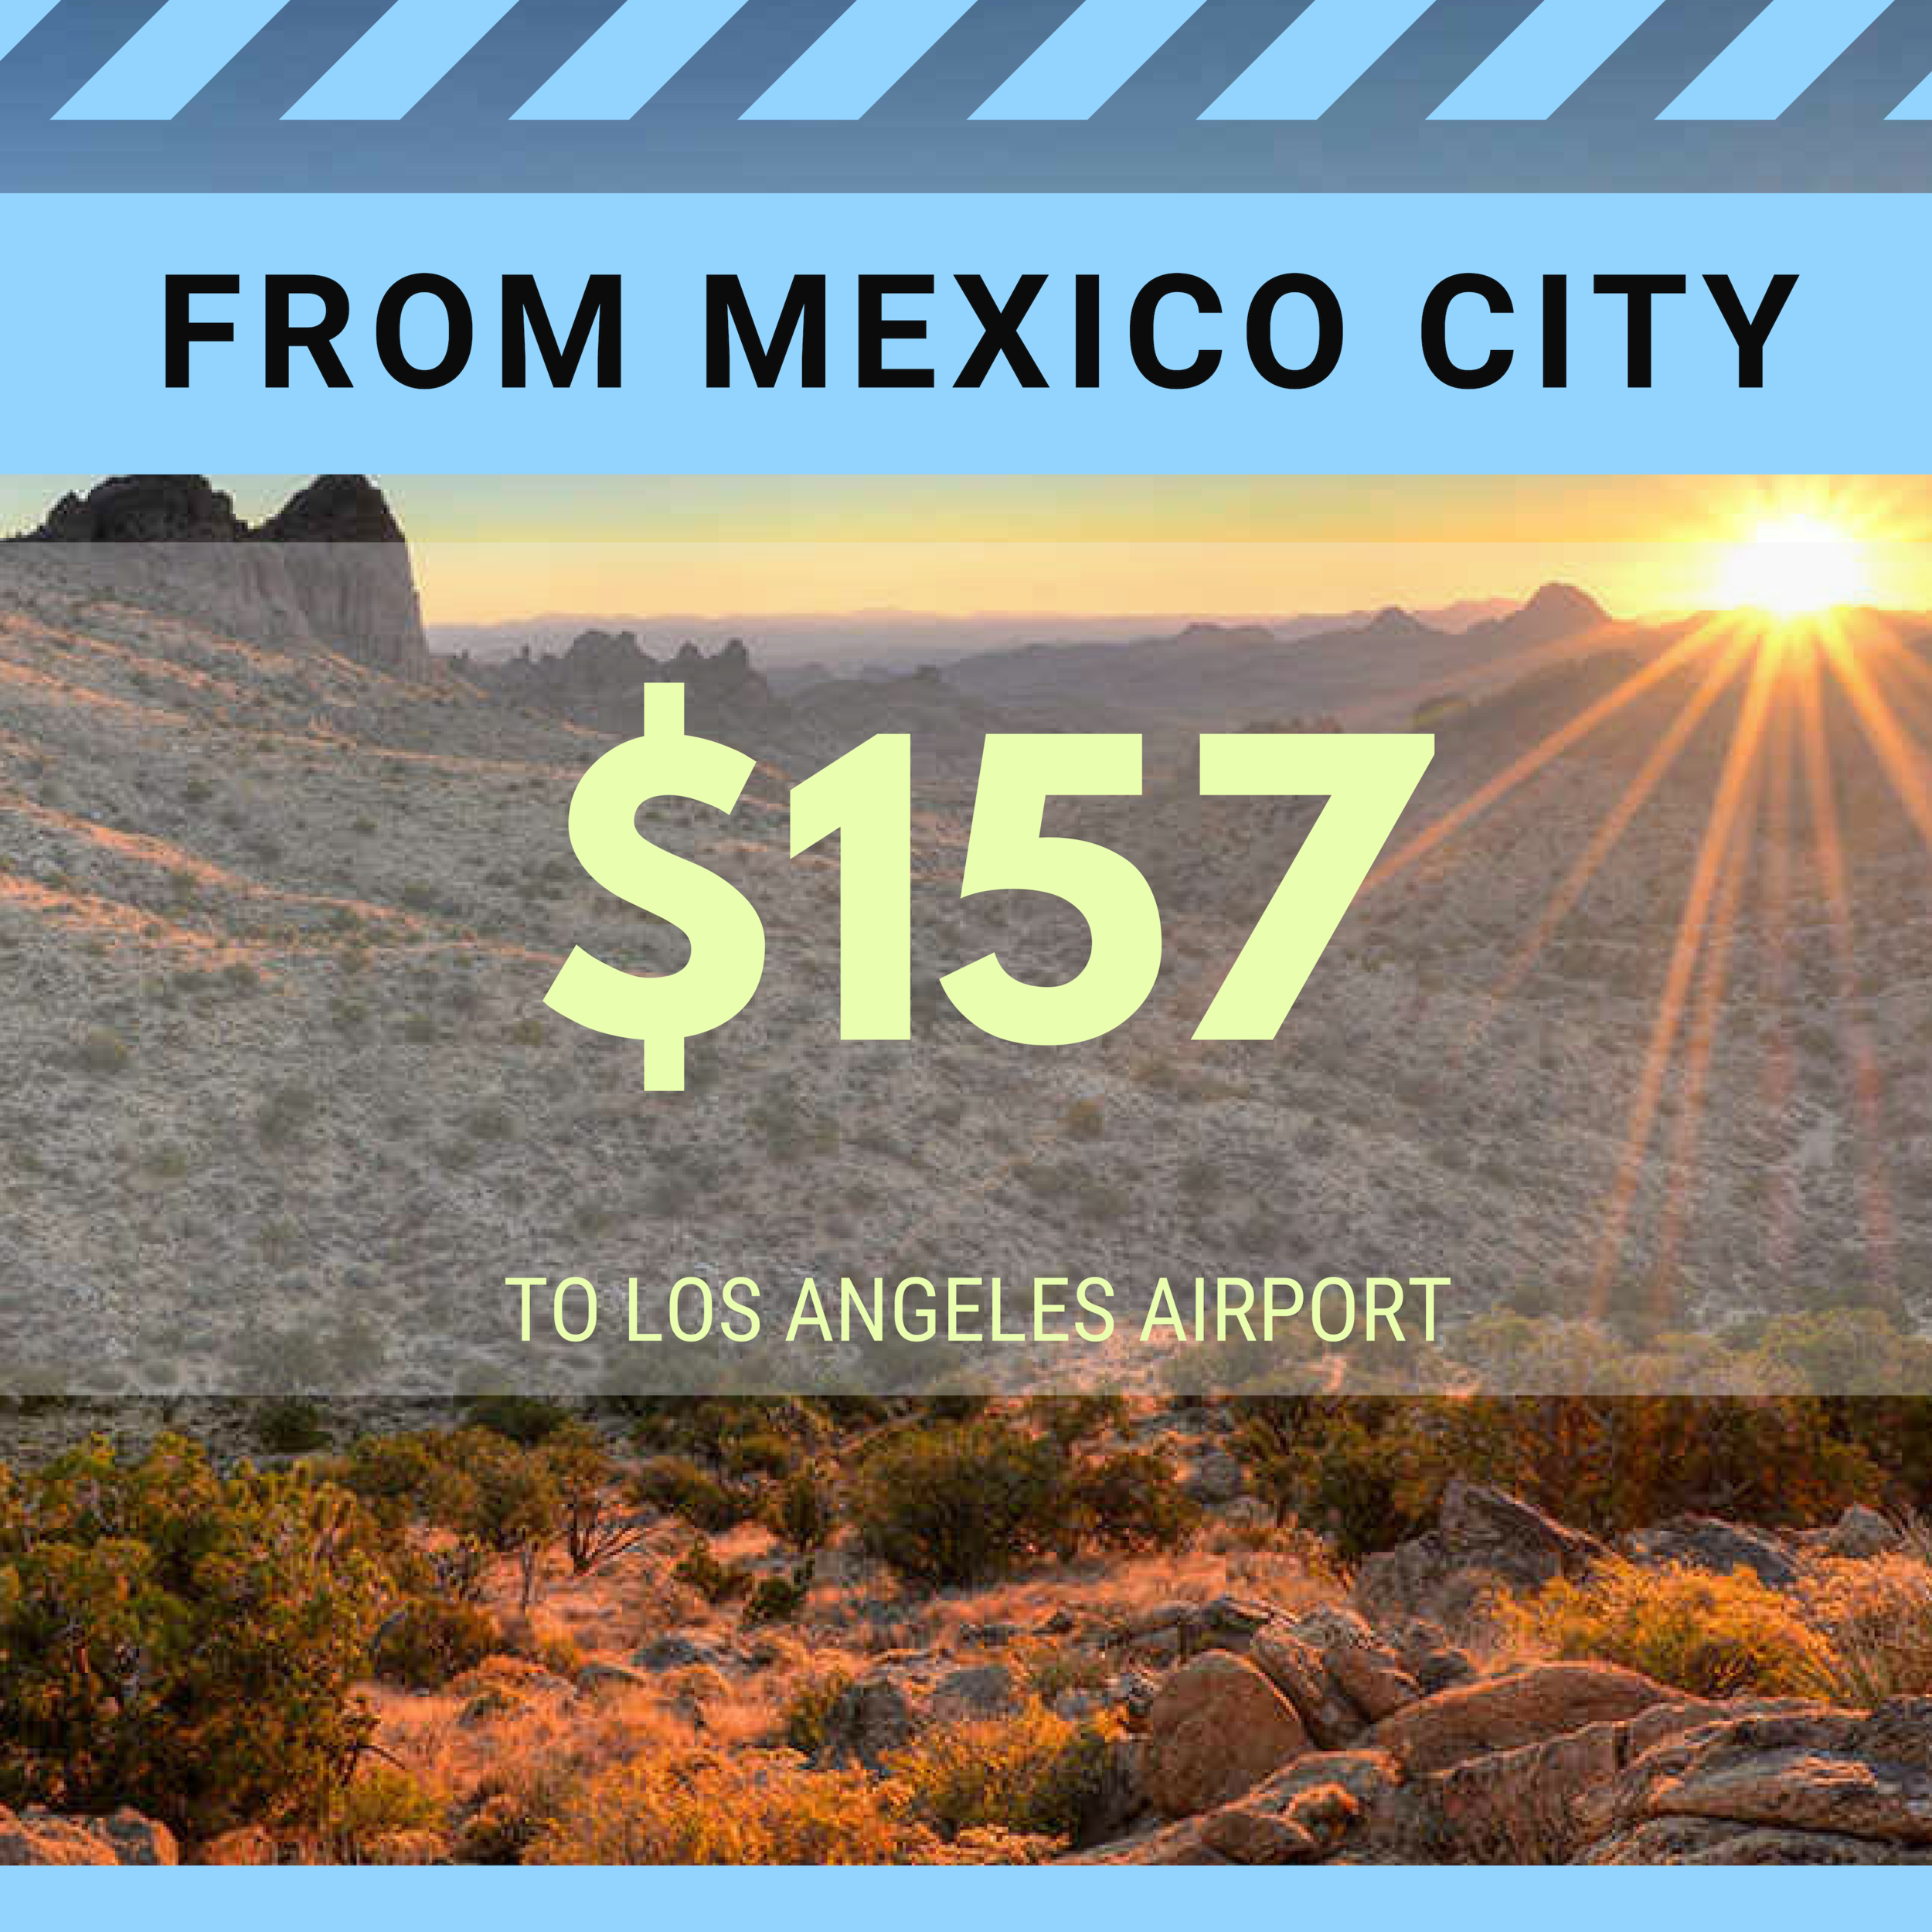 FROM MEXICO CITY TO LAX